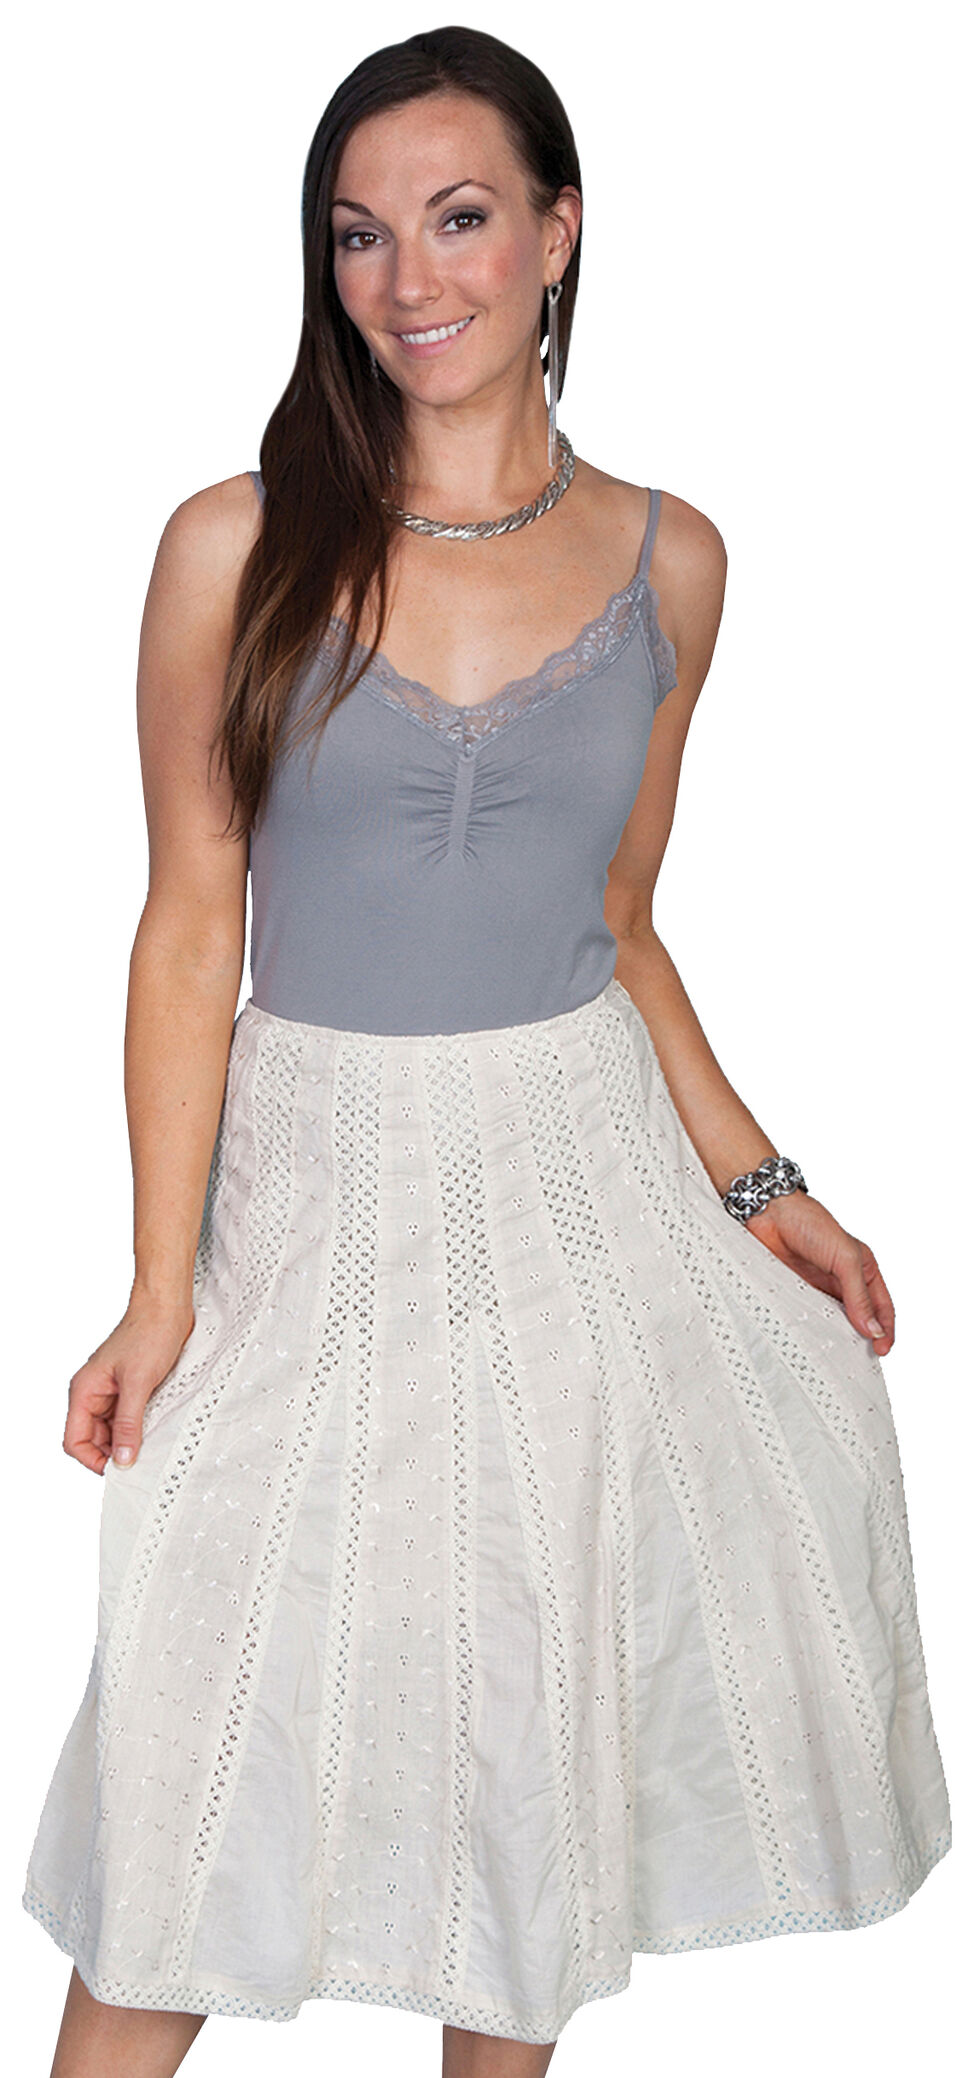 Scully Eyelet Skirt, Ivory, hi-res